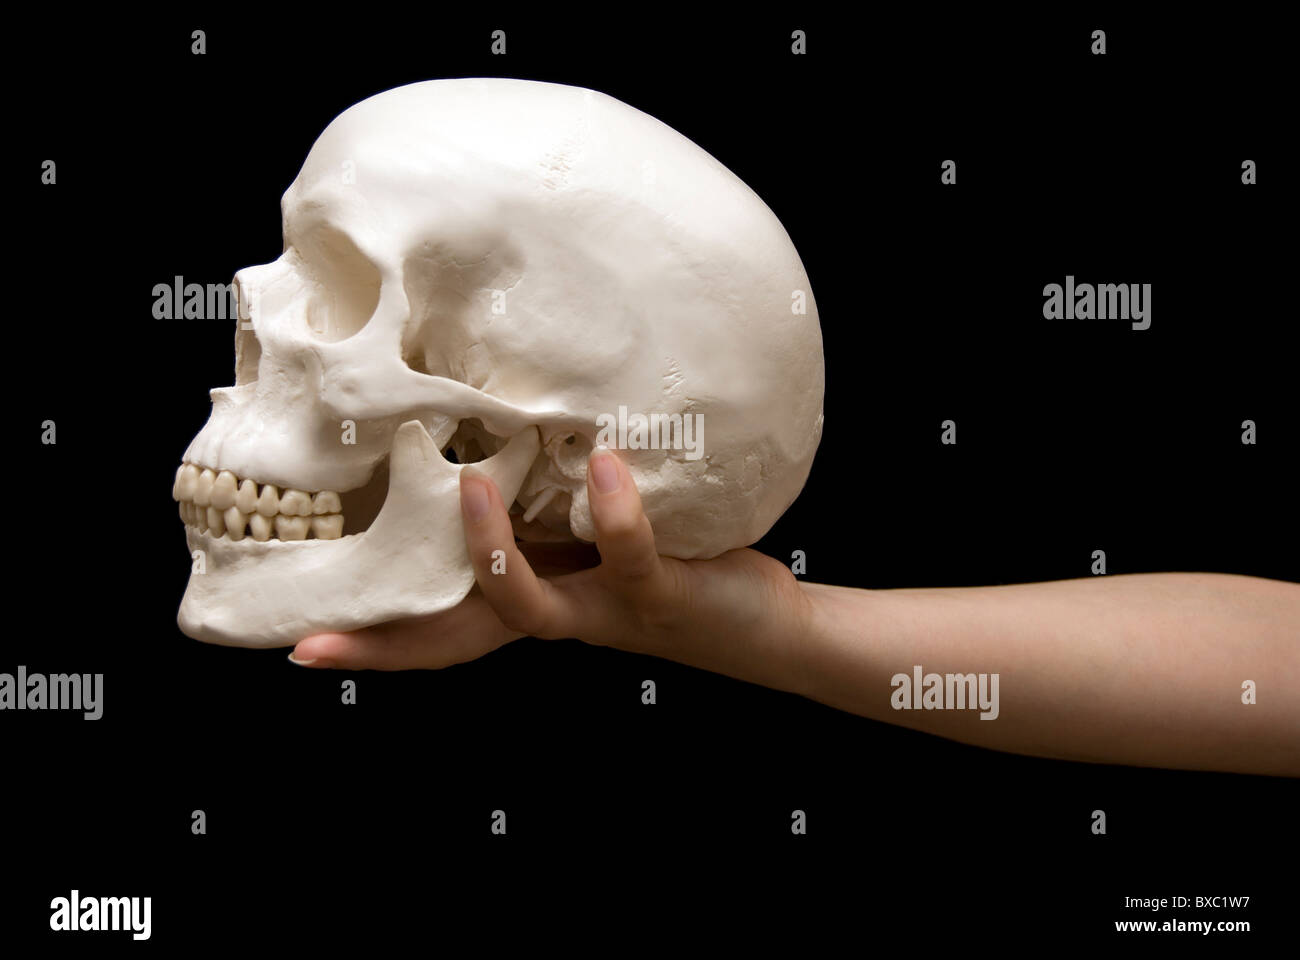 woman hand holding a human skull, to be or not to be concept - Stock Image